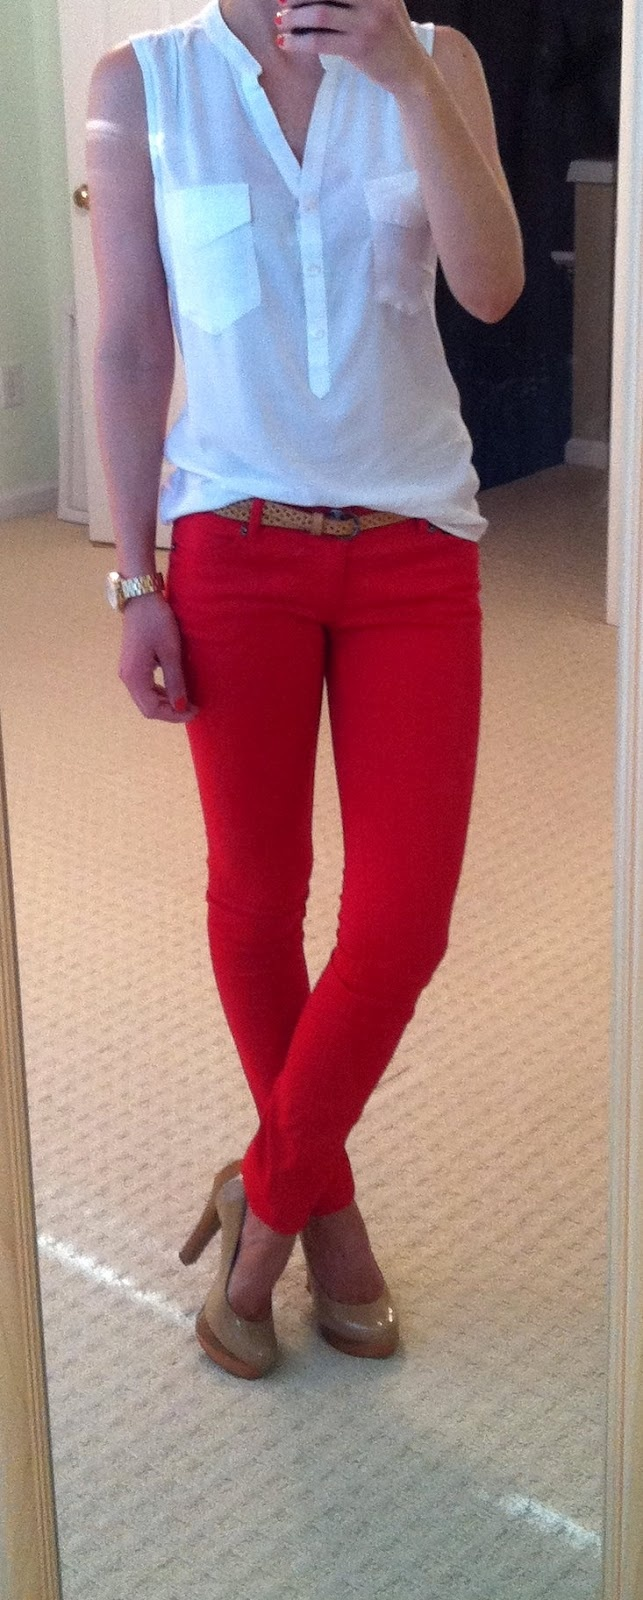 Slightly more colorful outfit for summer? Red jeans, white sleeveless blouse, nude pumps